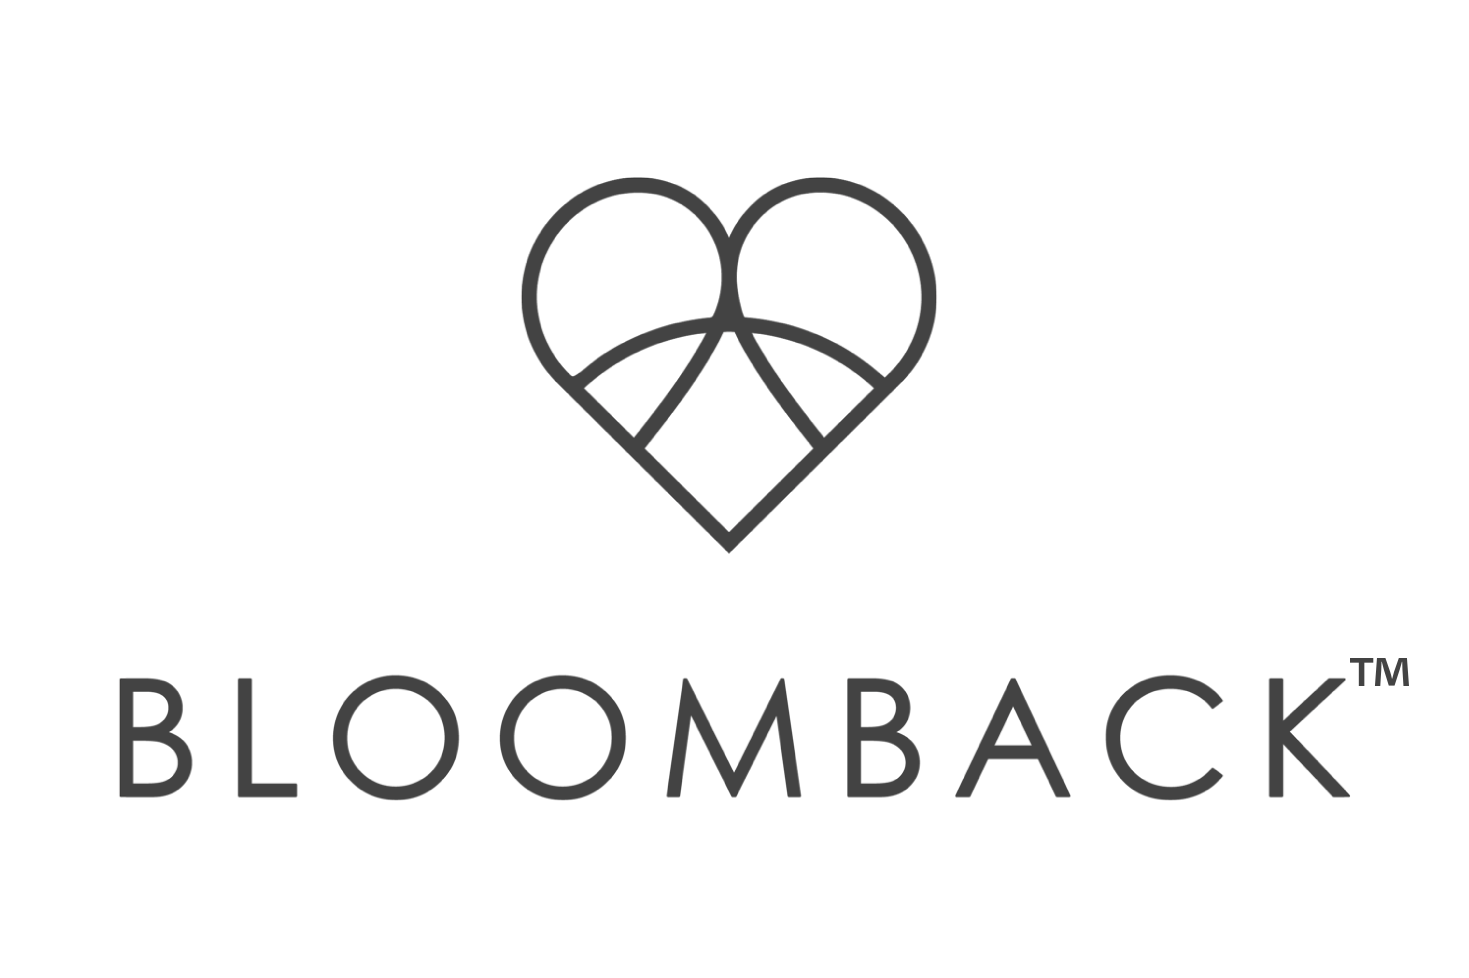 BloomBack Pte Ltd